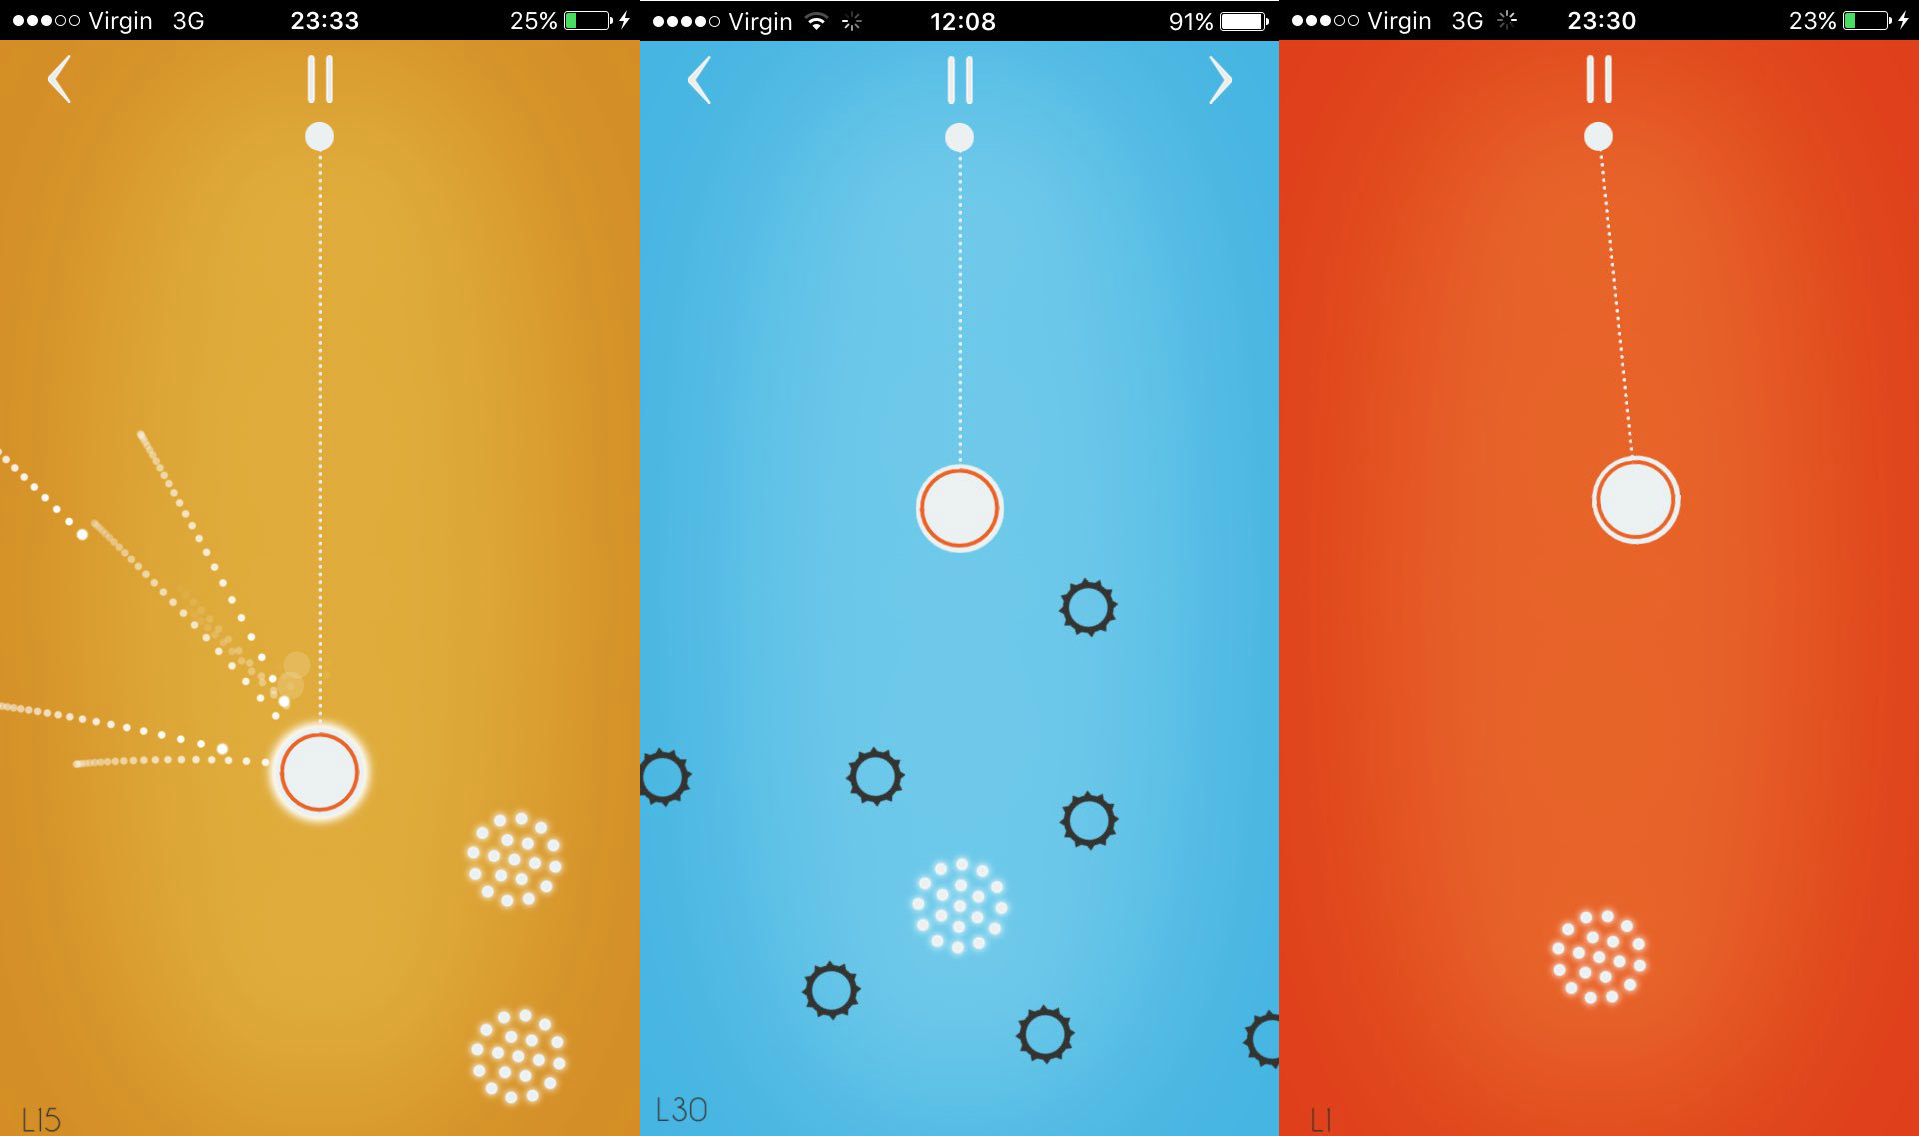 Swing with precision in abstract arcade game Pendulum | Articles